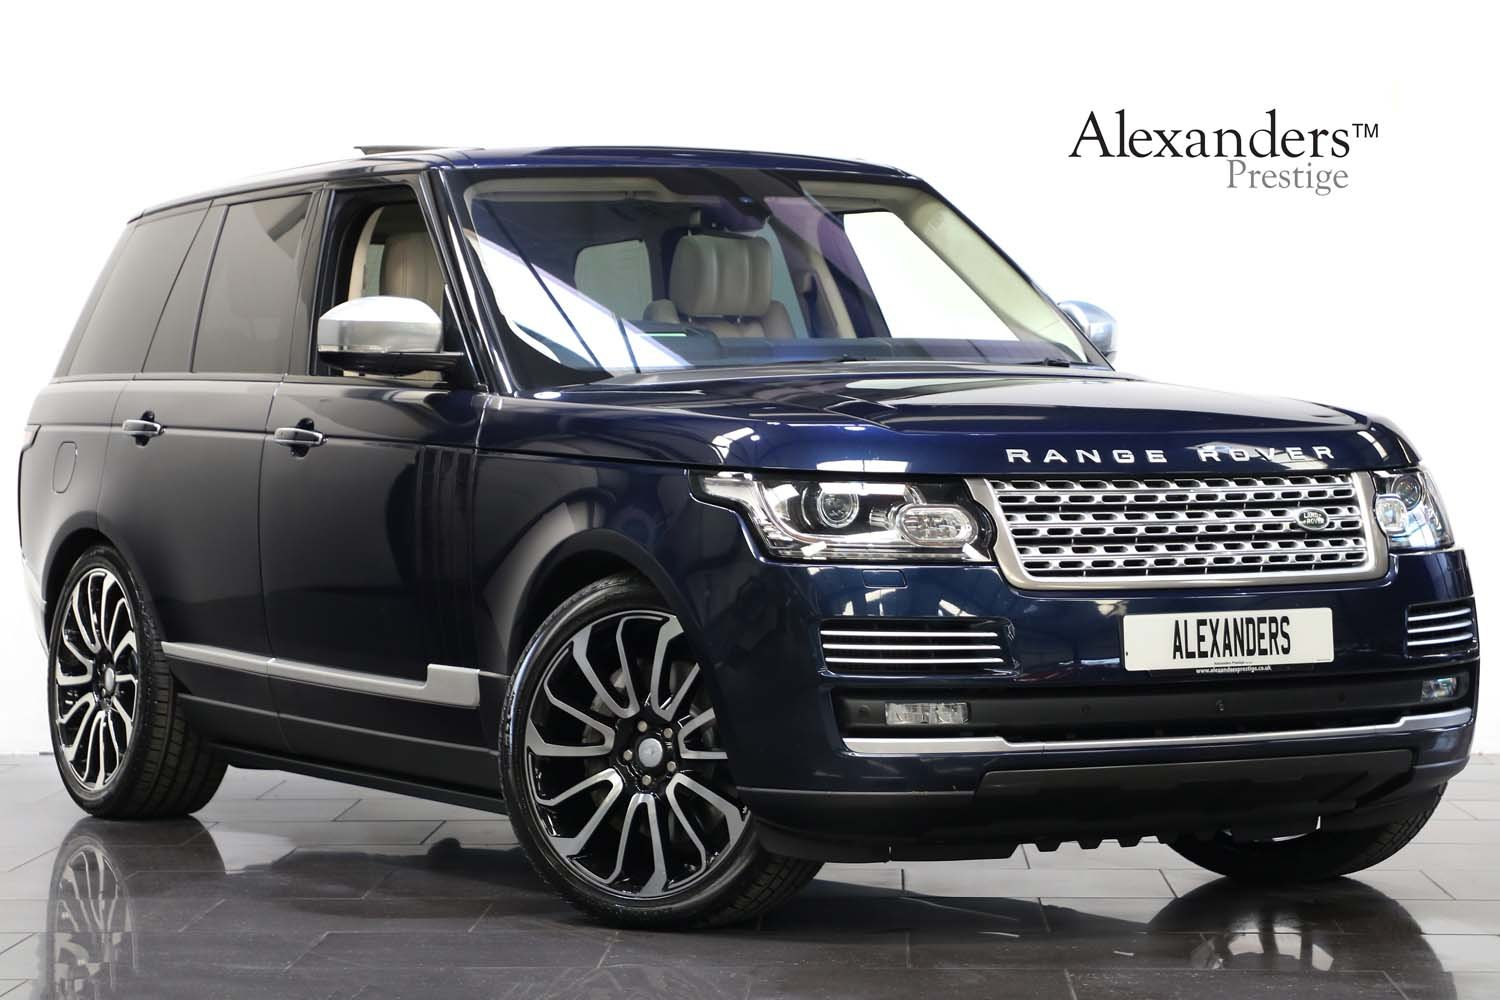 2015 15 15 RANGE ROVER 4.4 SDV8 AUTOBIOGRAPHY For Sale (picture 1 of 6)